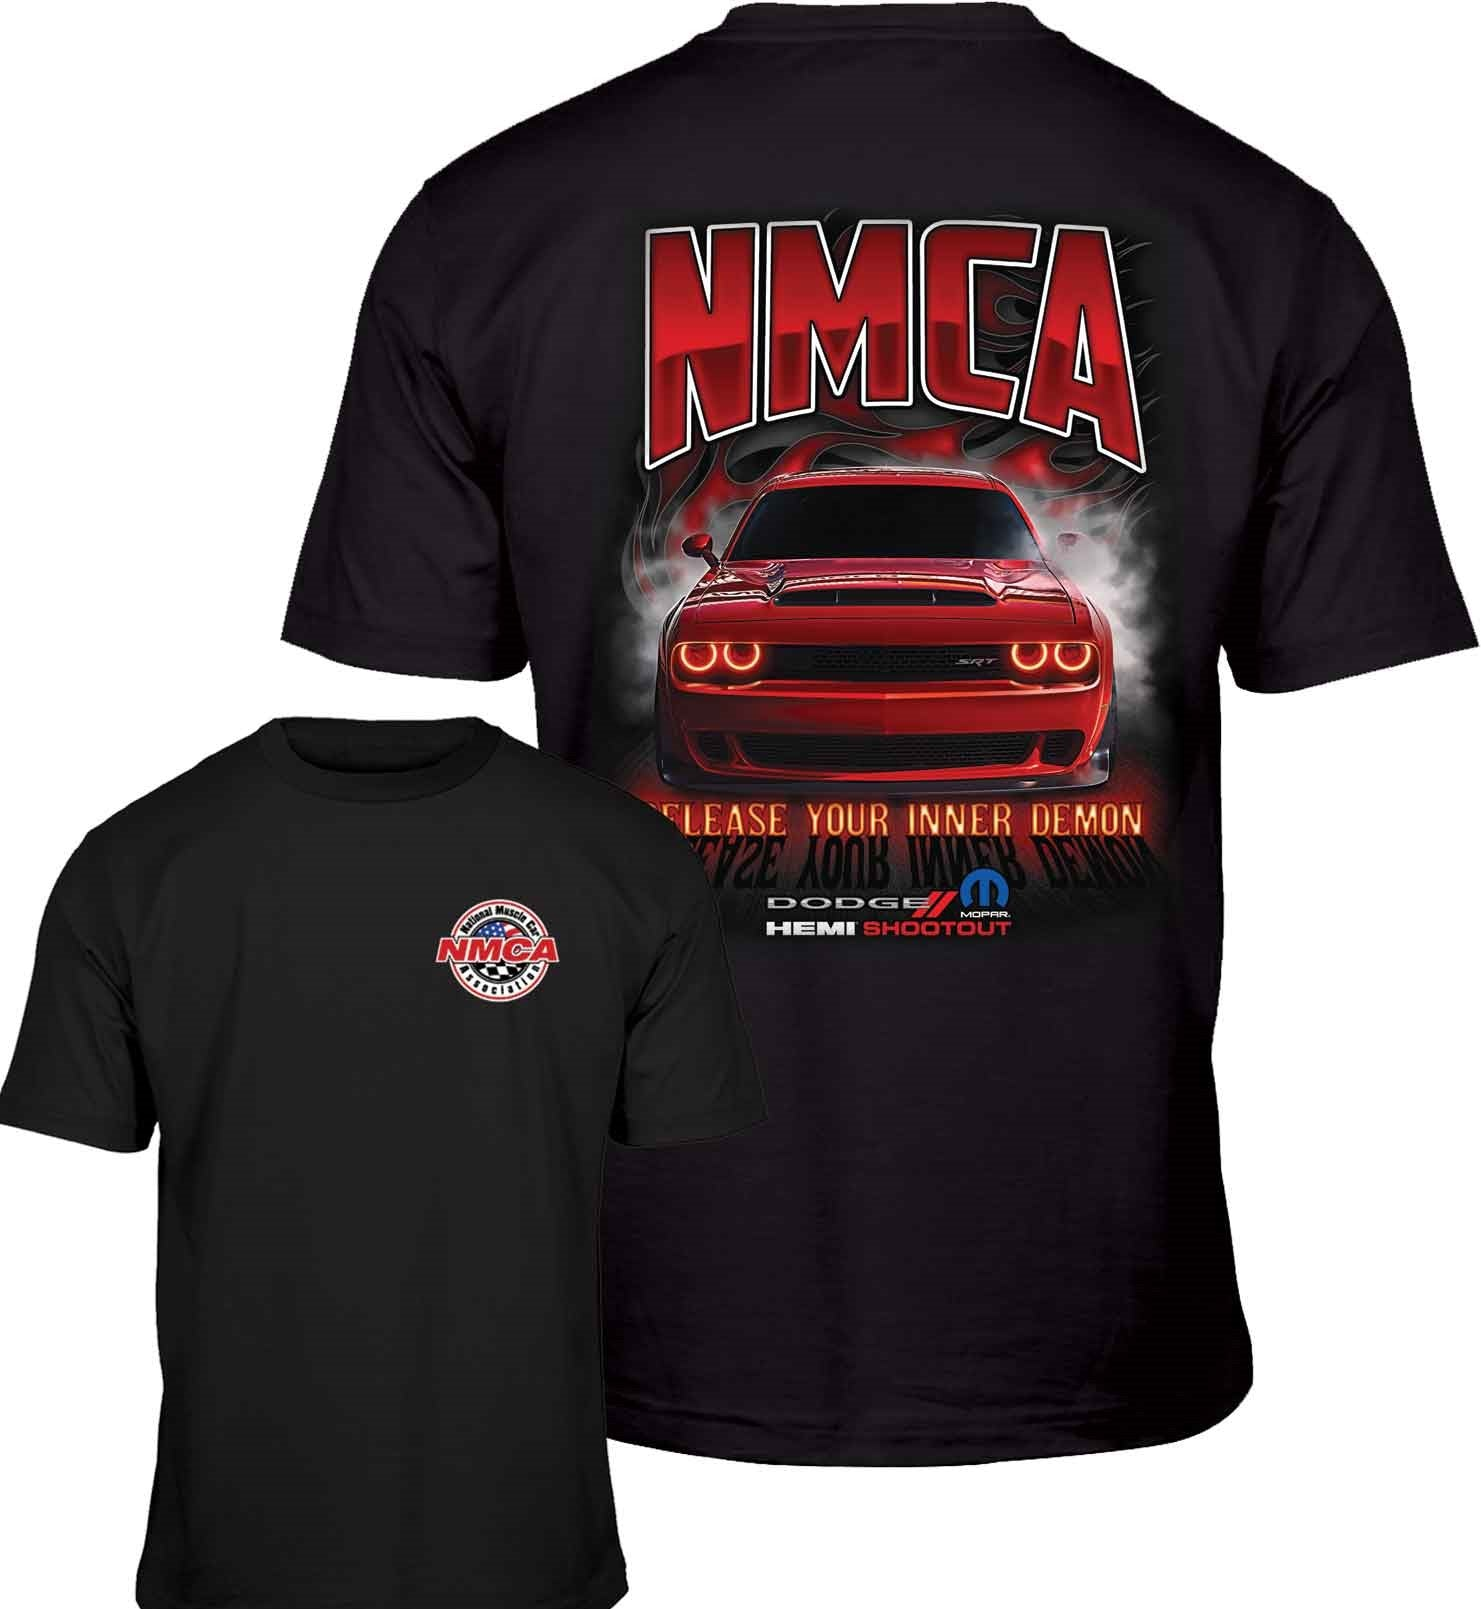 NMCA Release Your Inner Demon Shirt